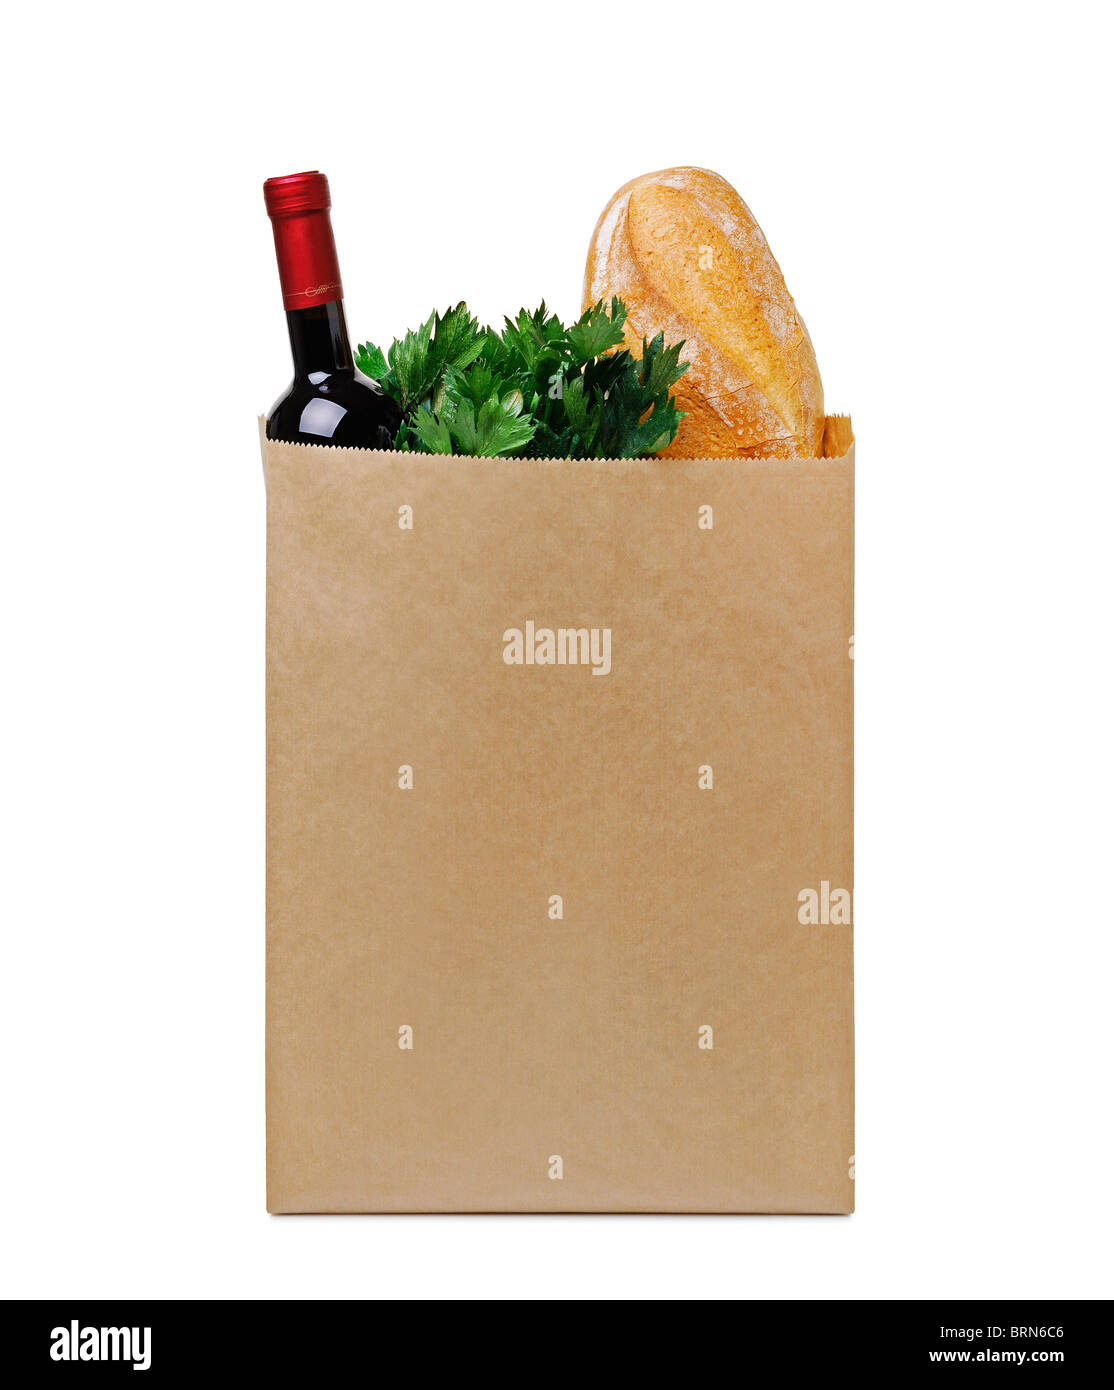 Grocery Bag Full of Groceries, Cut Out. - Stock Image